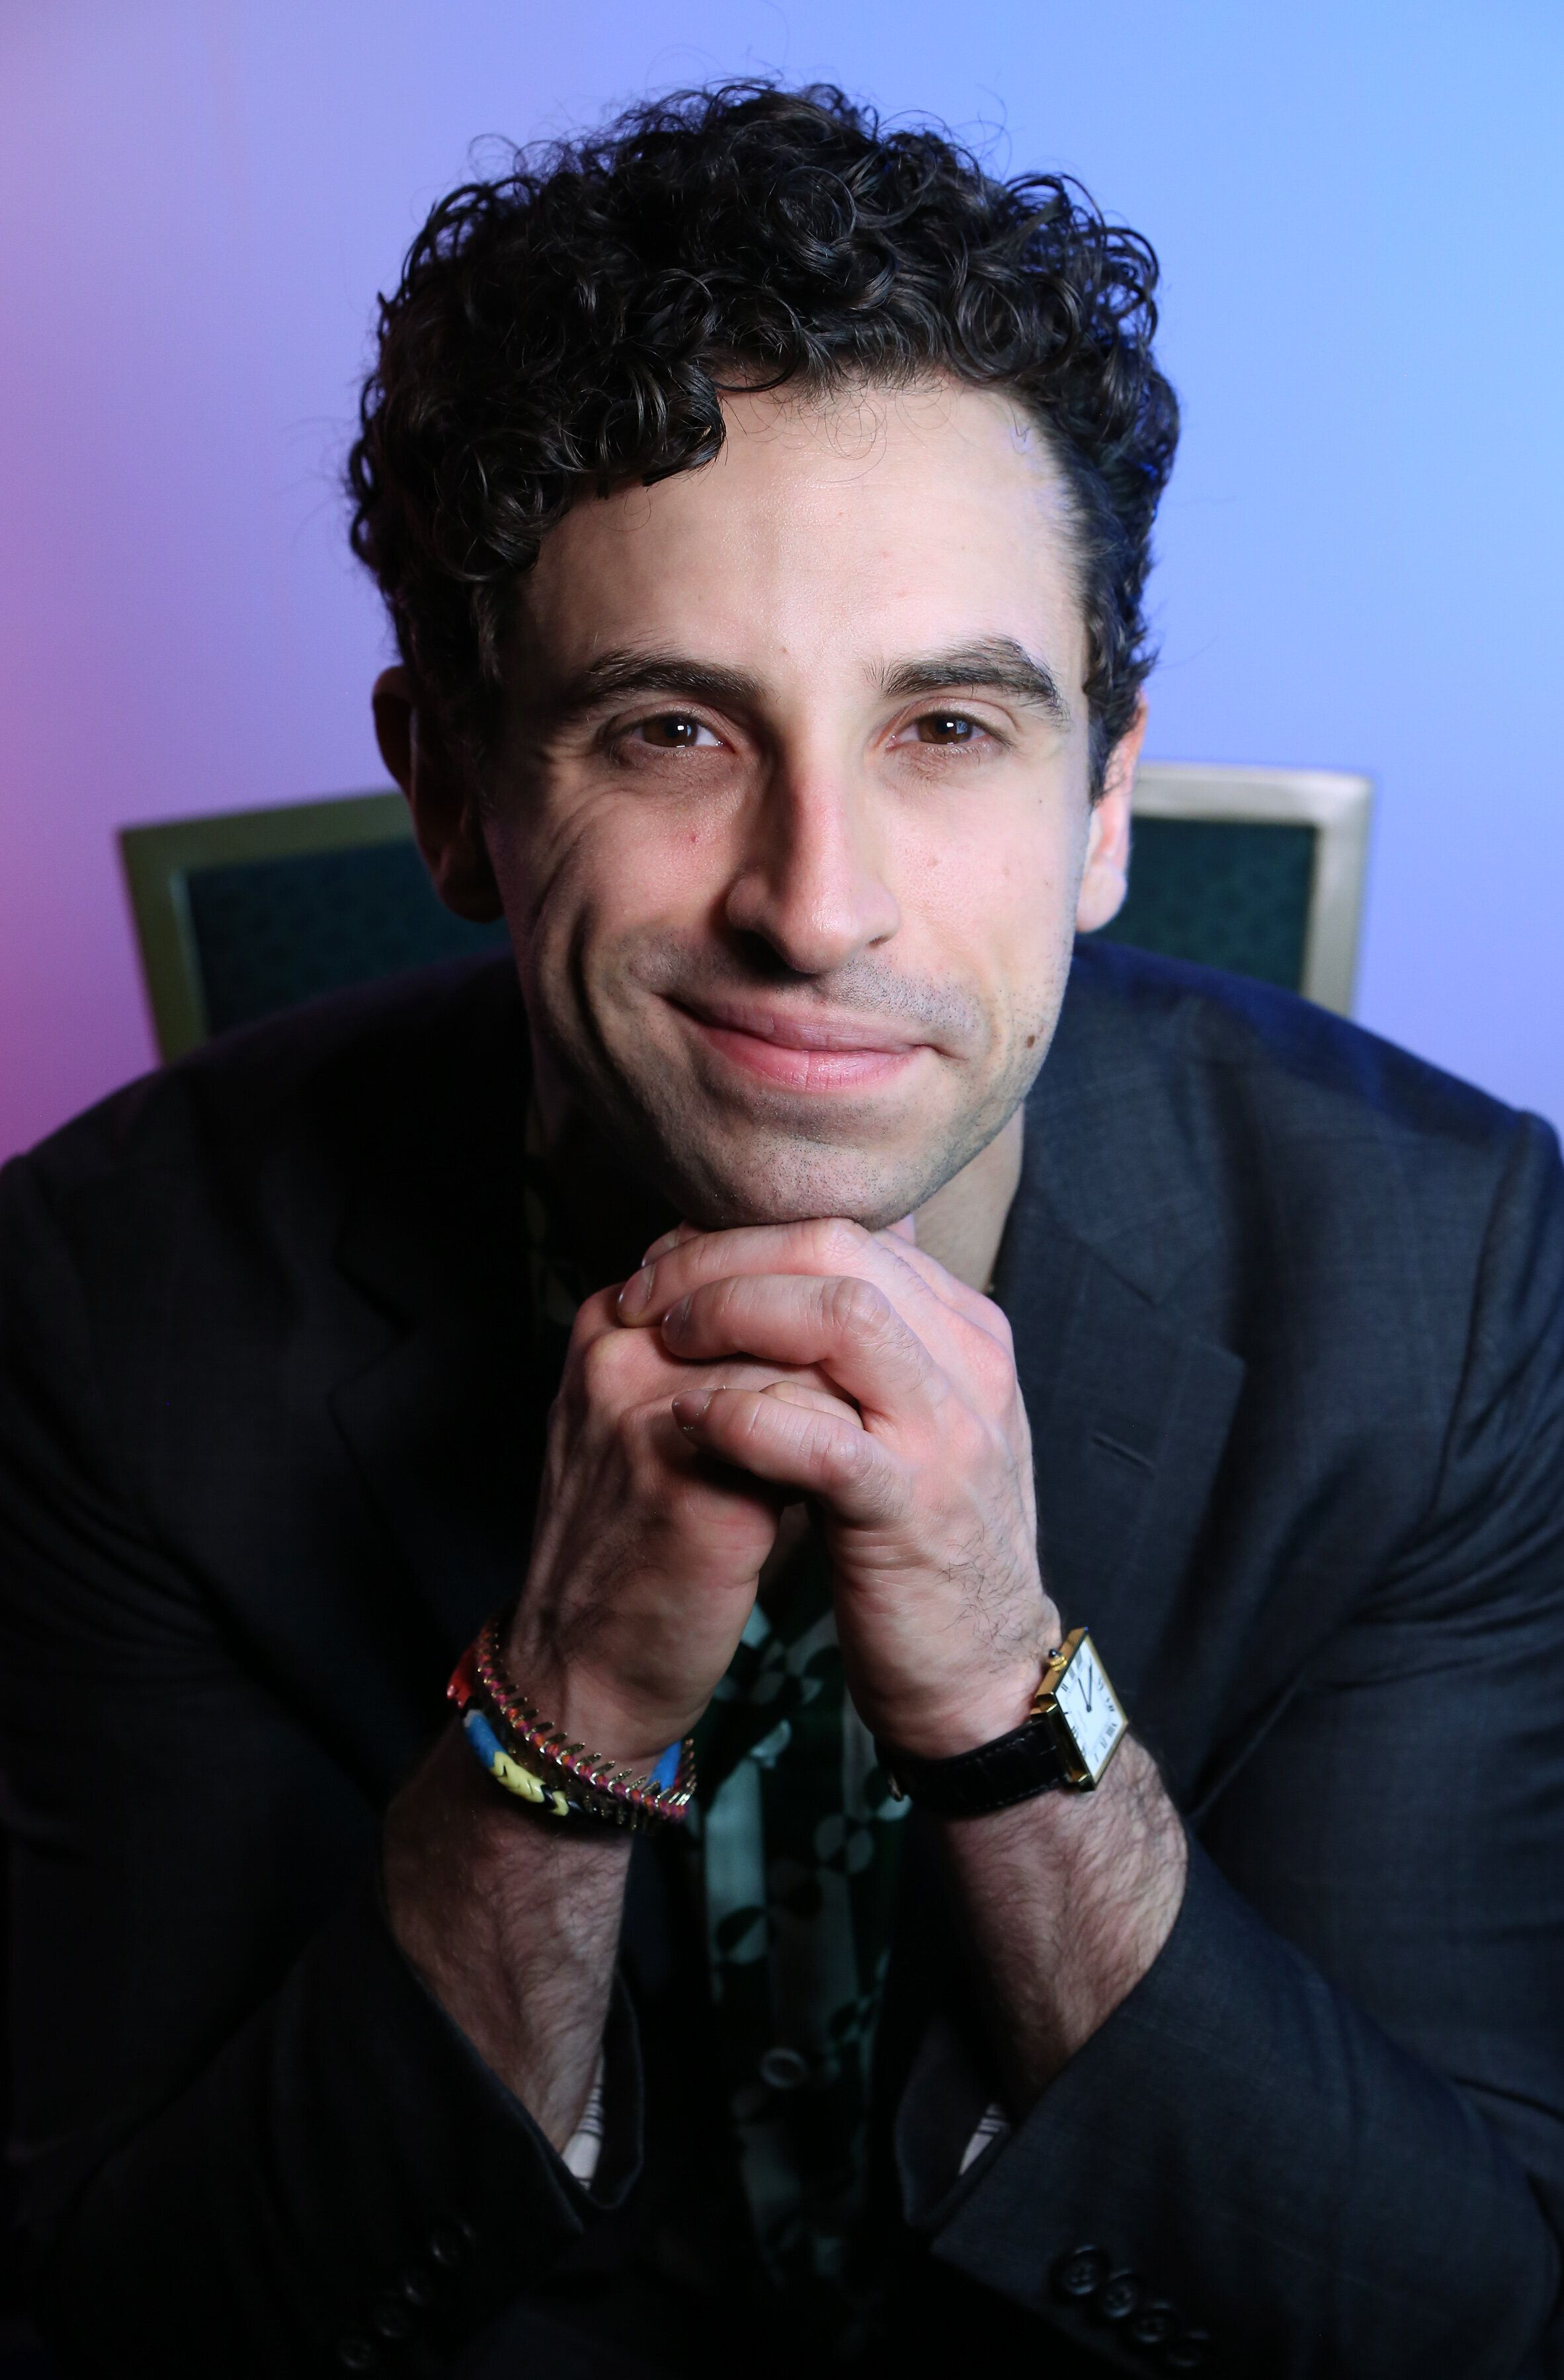 NEW YORK, NY - MAY 01:  Brandon Uranowitz during The 73rd Annual Tony Awards Meet The Nominees Press Day at the Sofitel Hotel on May 01, 2019 in New York City.  (Photo by Walter McBride/Getty Images)